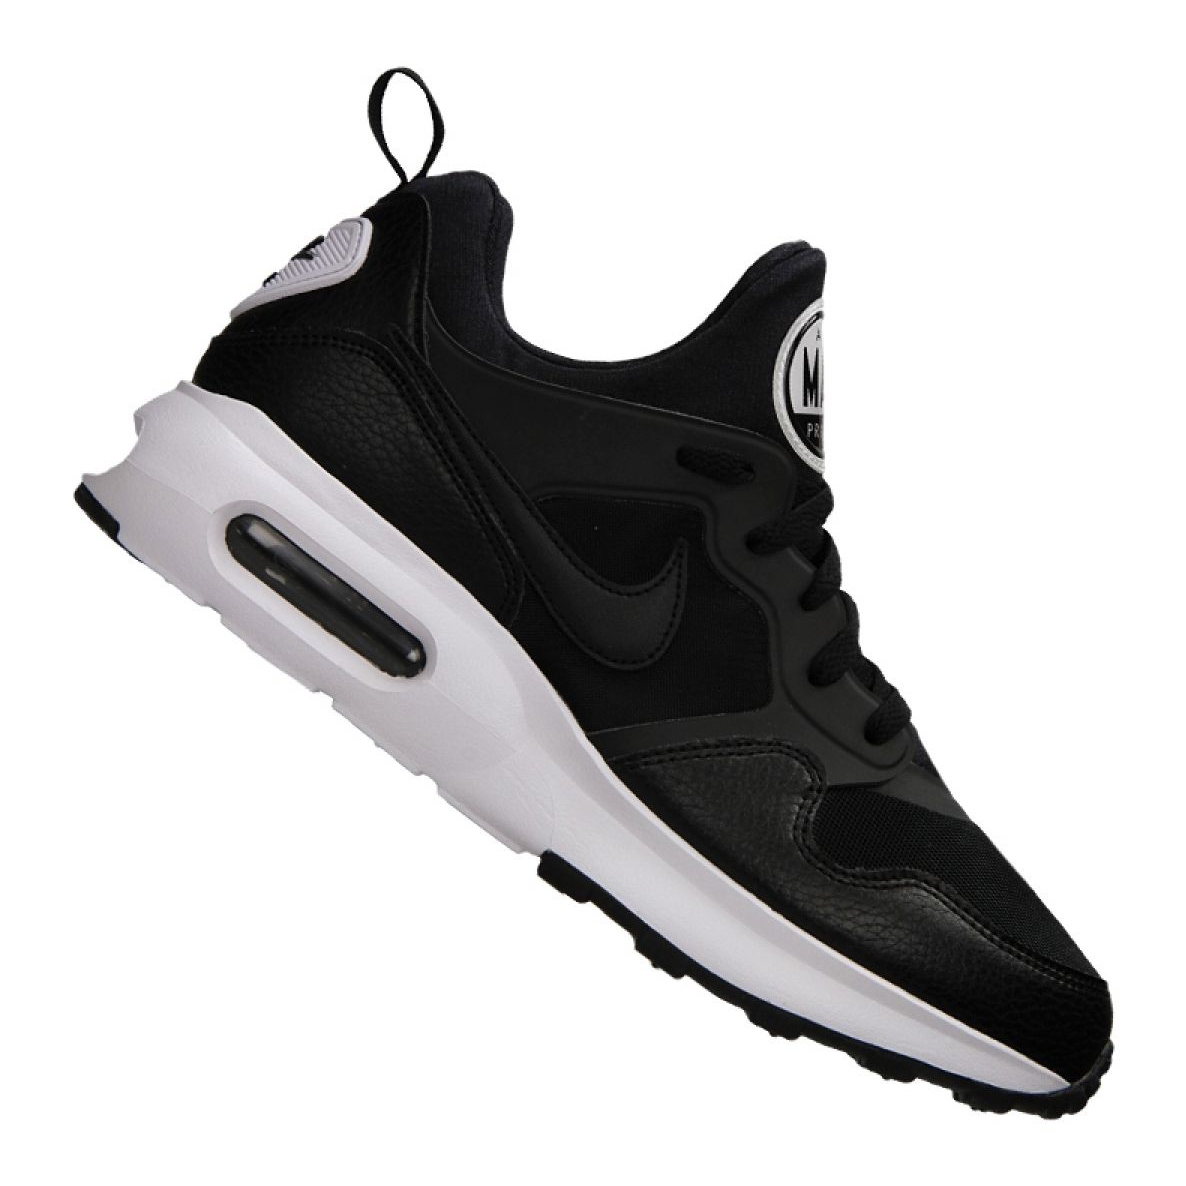 Details about Black Nike Air Max Prime M 876068 001 shoes